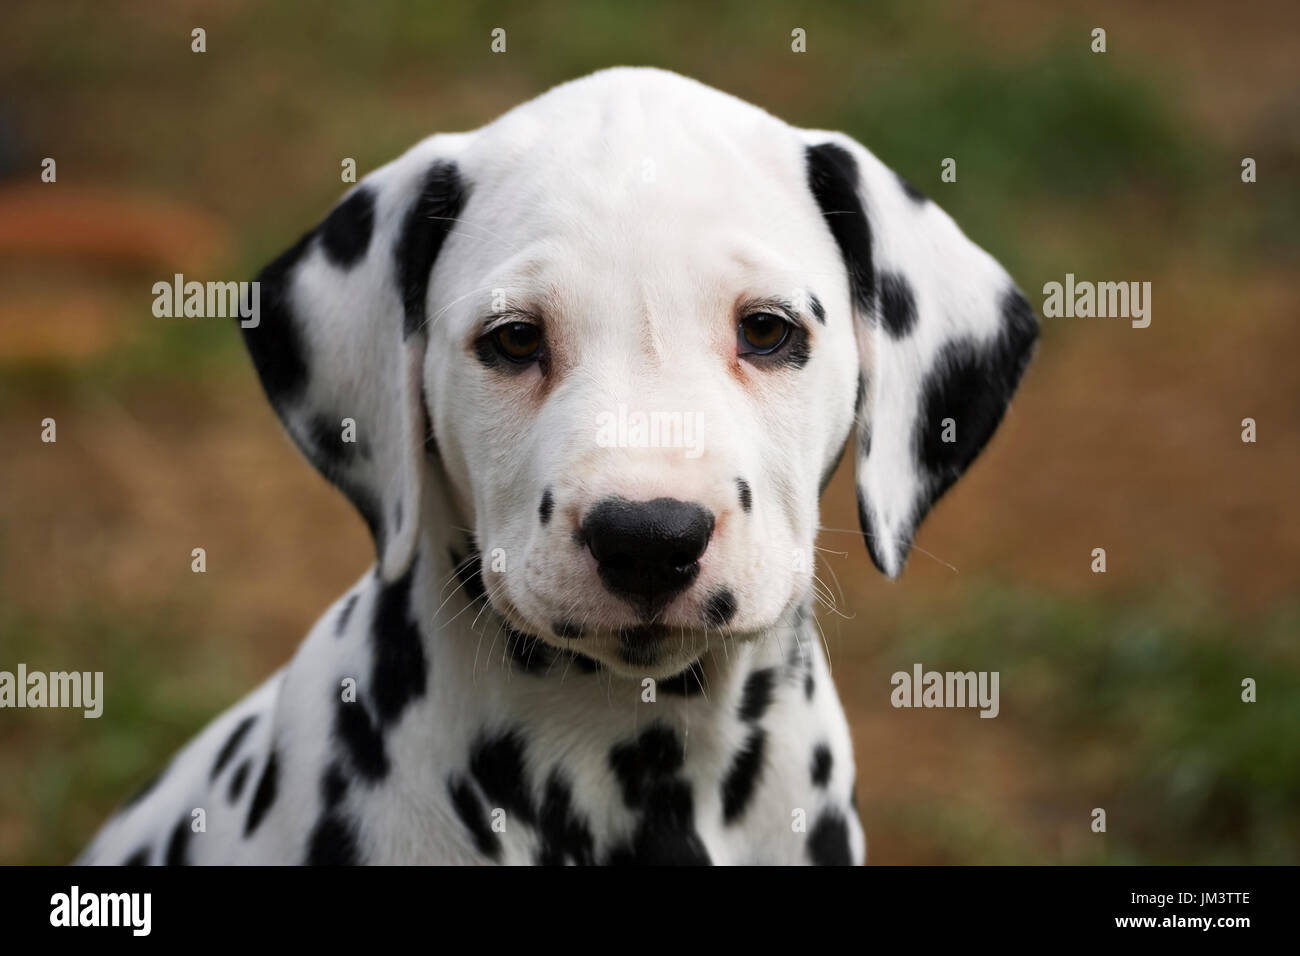 portrait of dalmatian puppy 8 weeks old - Stock Image